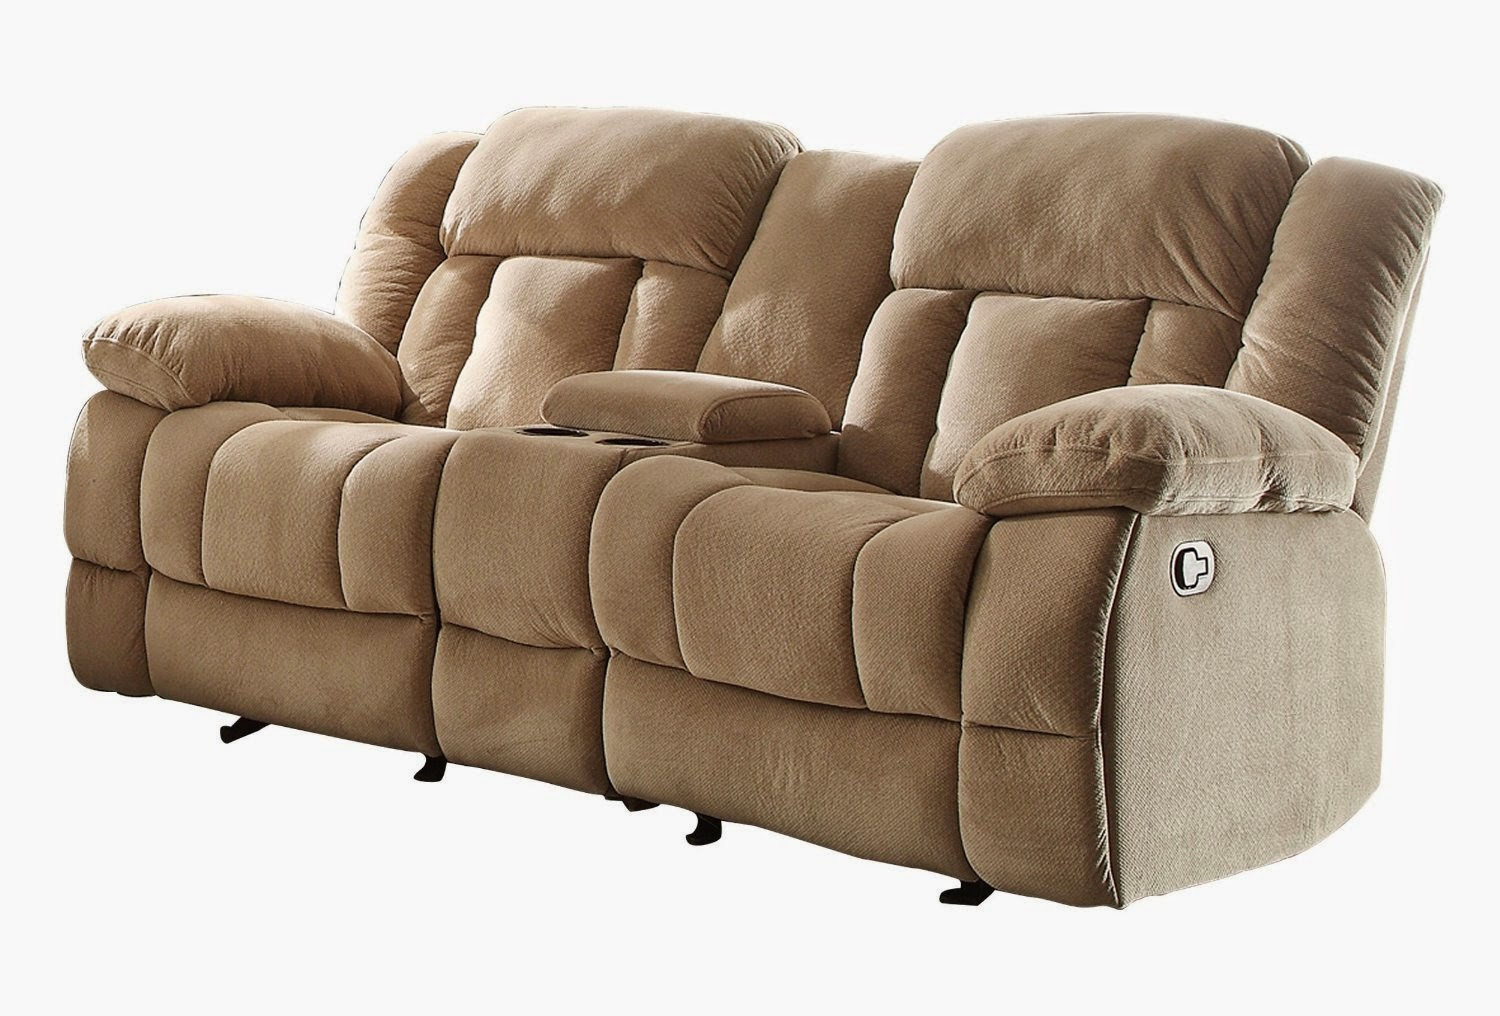 Discount Sofa And Loveseat Sets Flat Pack Bed Cheap Reclining April 2015